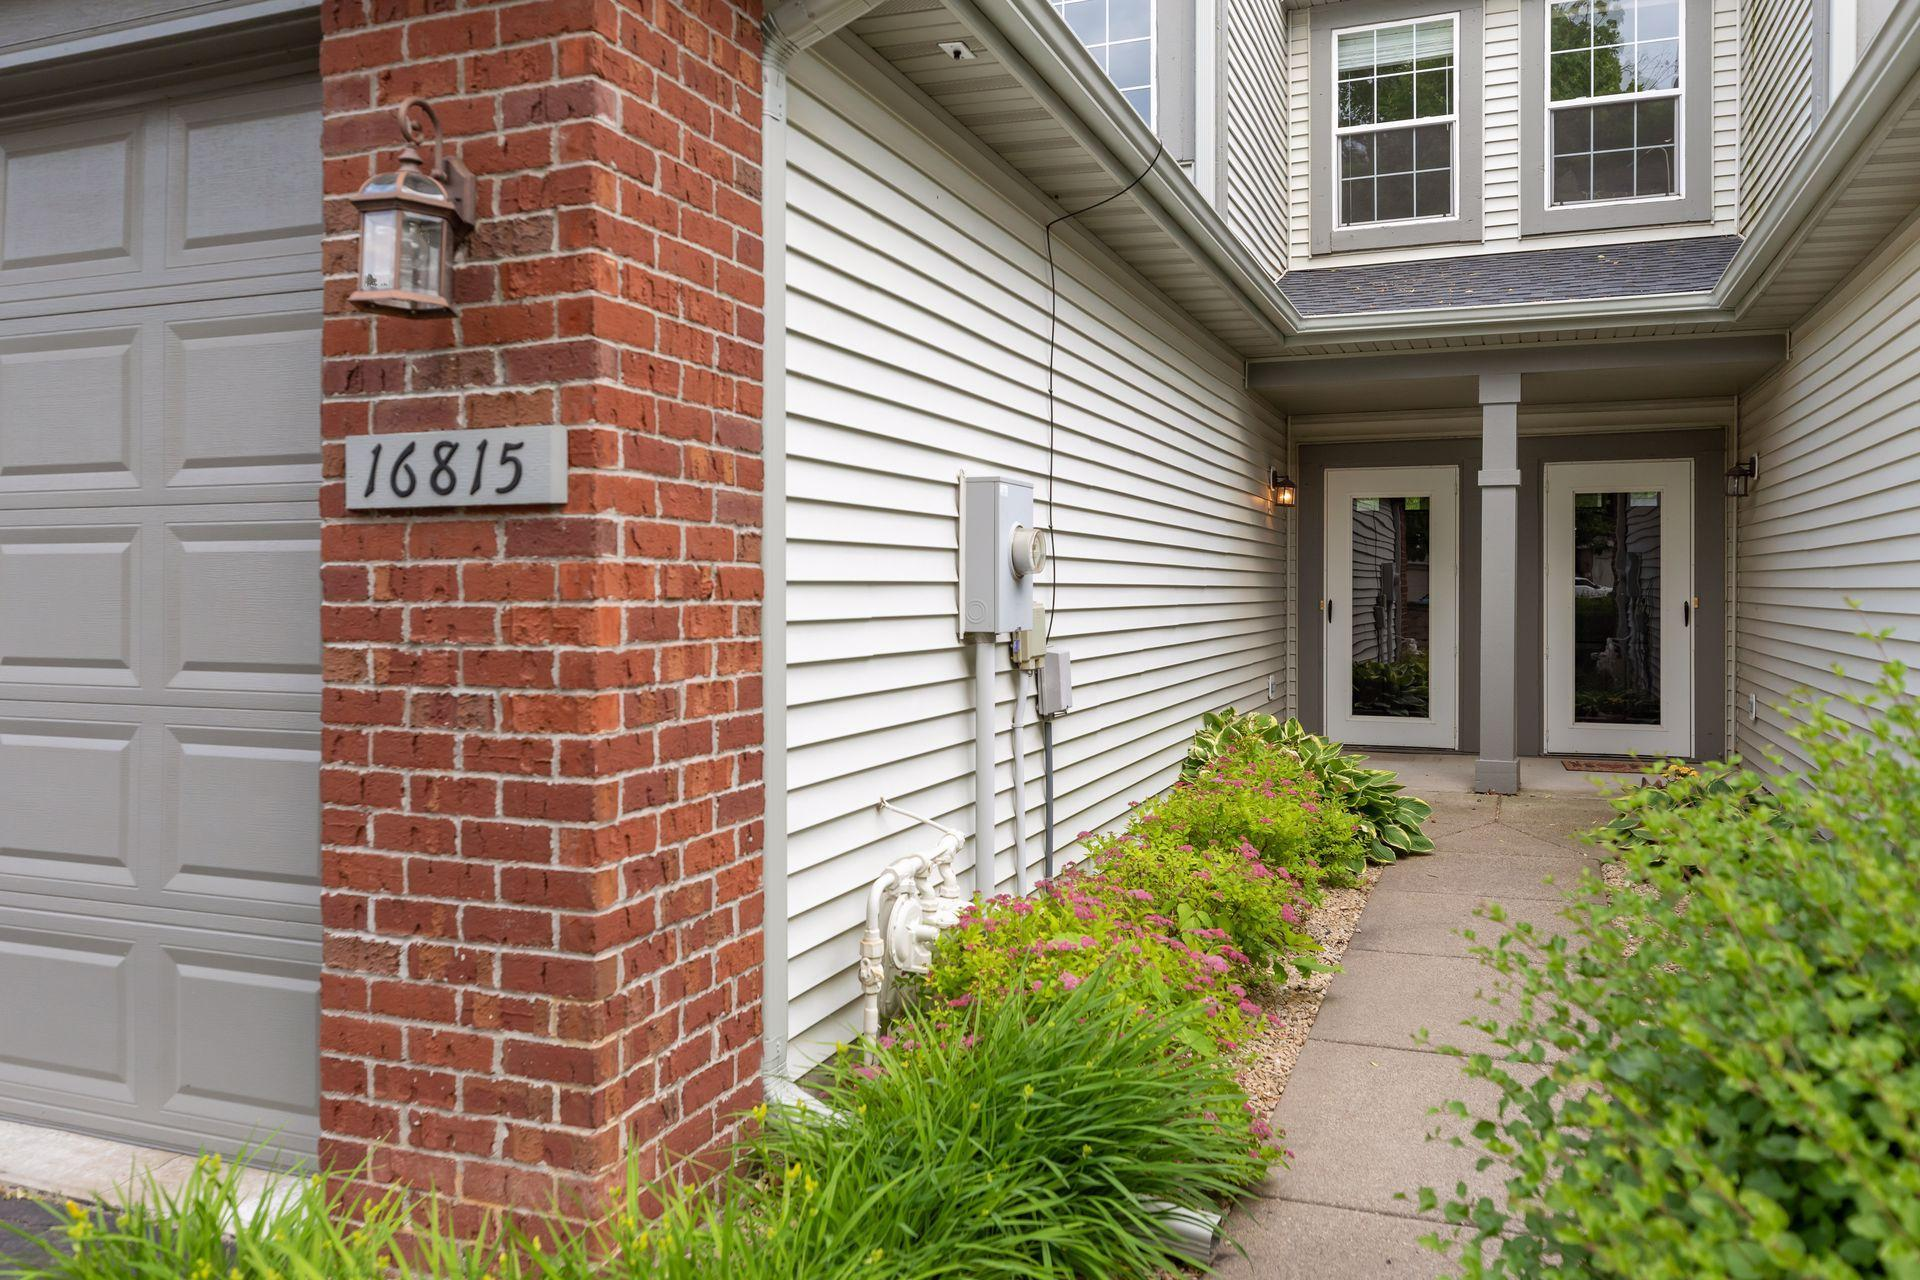 16815 79th N Property Photo - Maple Grove, MN real estate listing